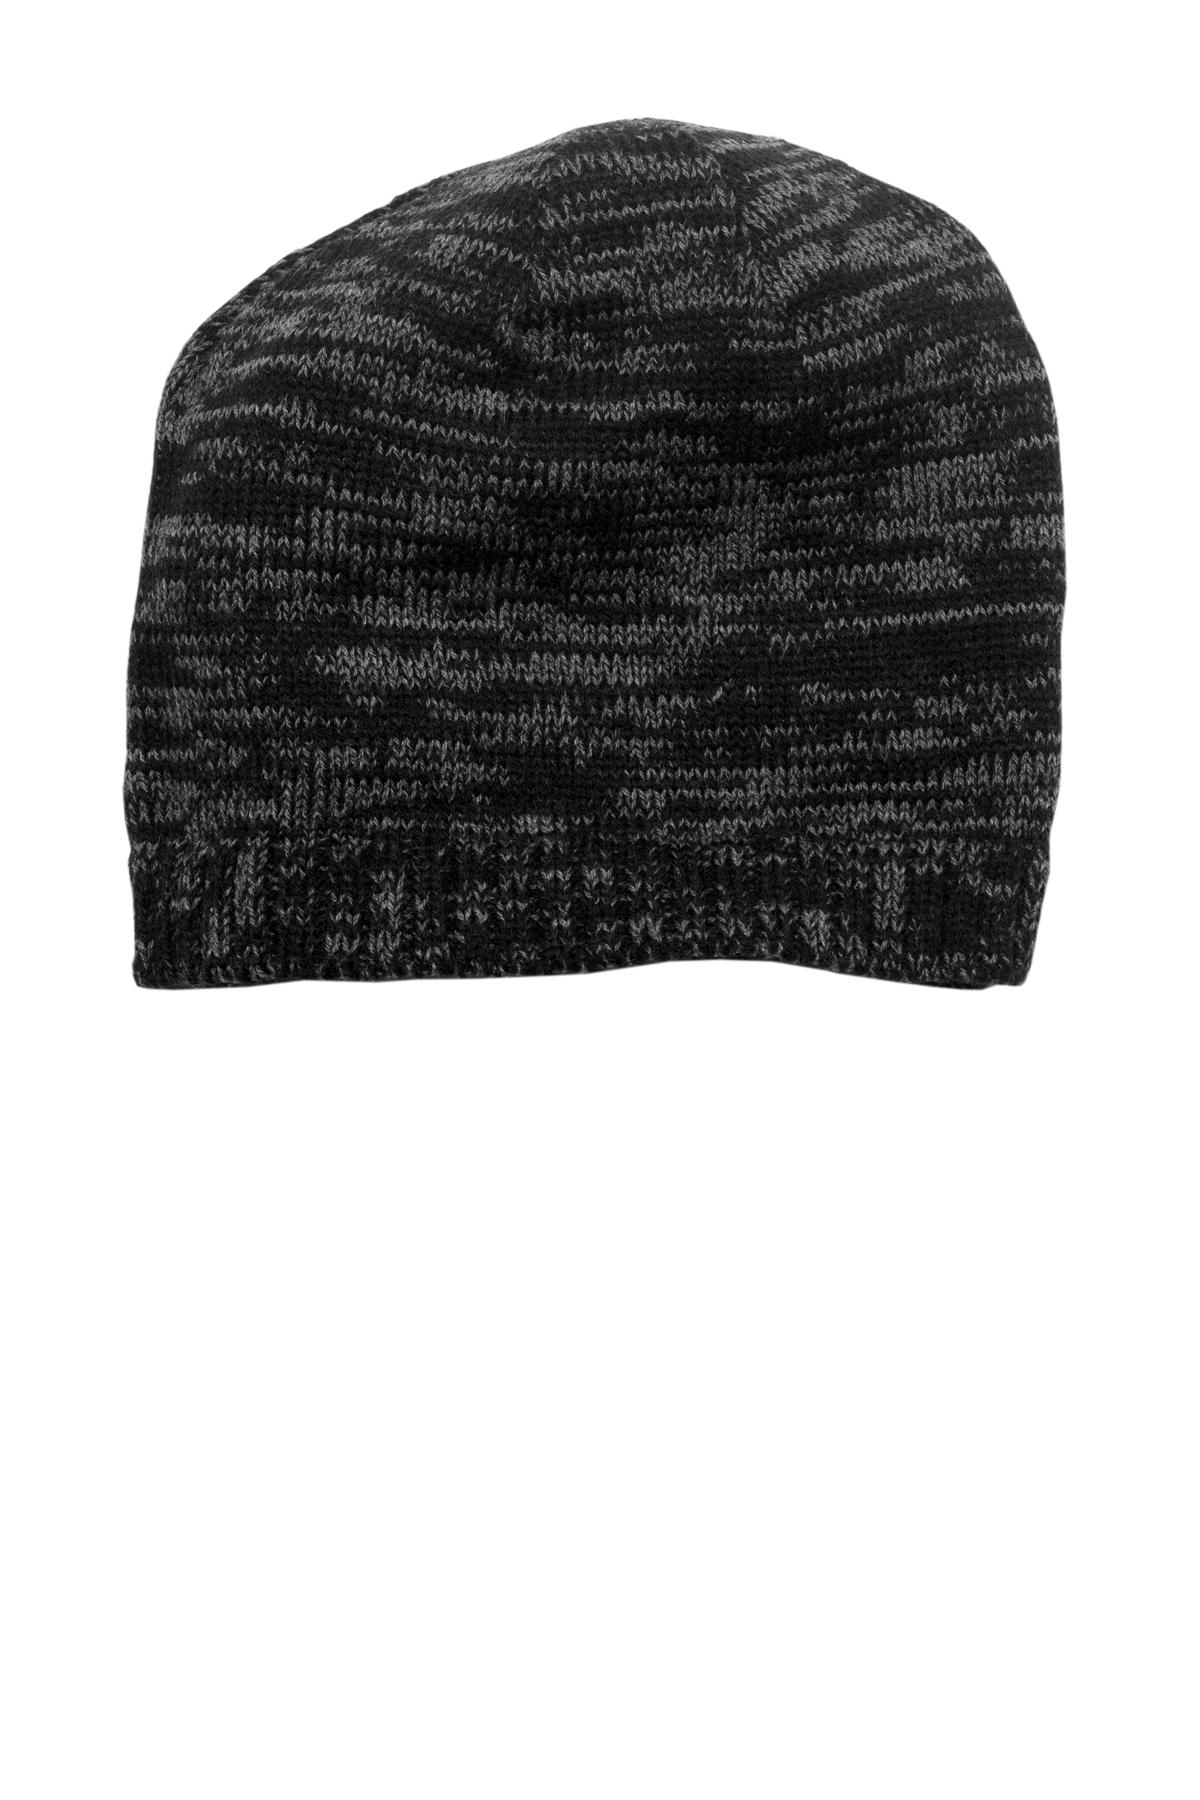 District ®  Spaced-Dyed Beanie DT620 - Black/ Charcoal